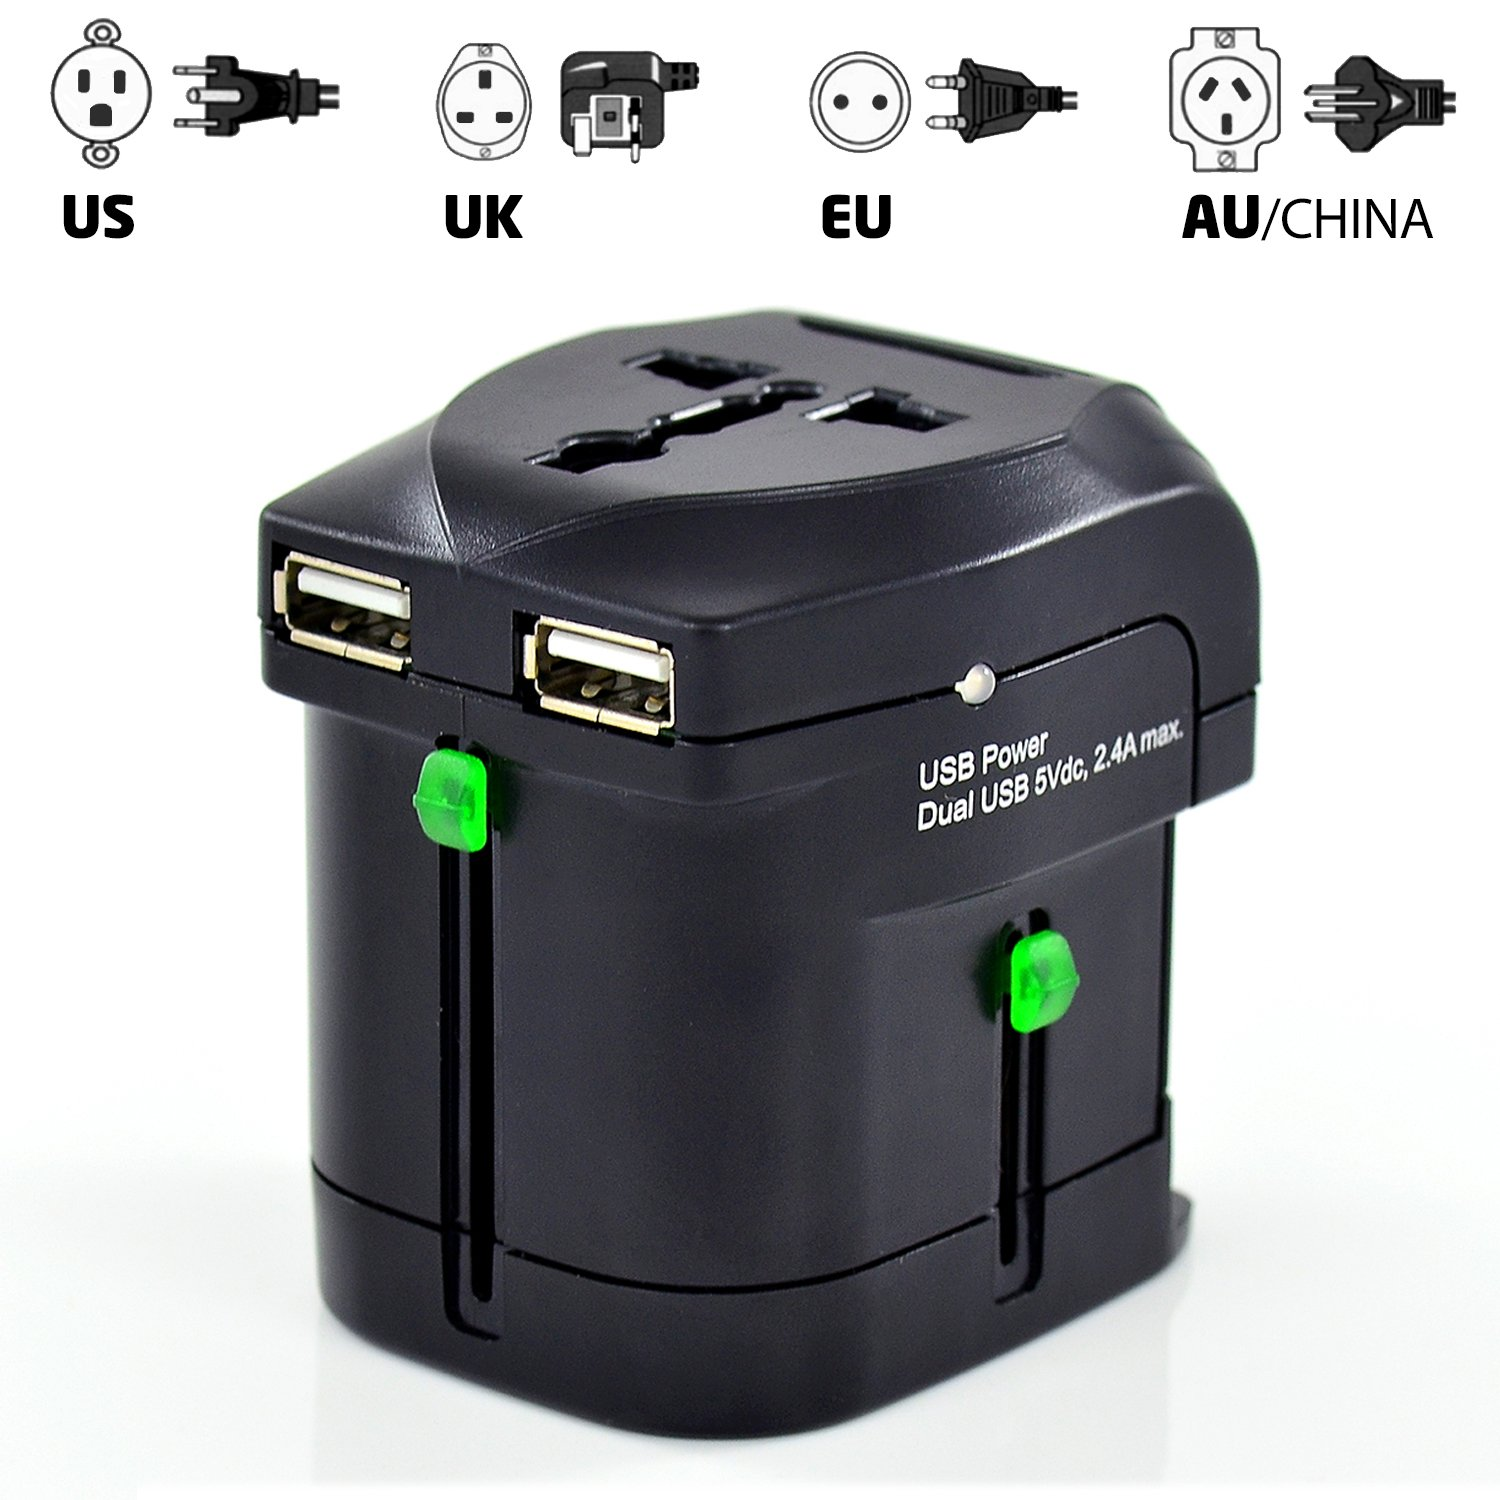 Otimo World Power Adapter Travel with Dual USB Charging Ports - Works in over 200 Countries!